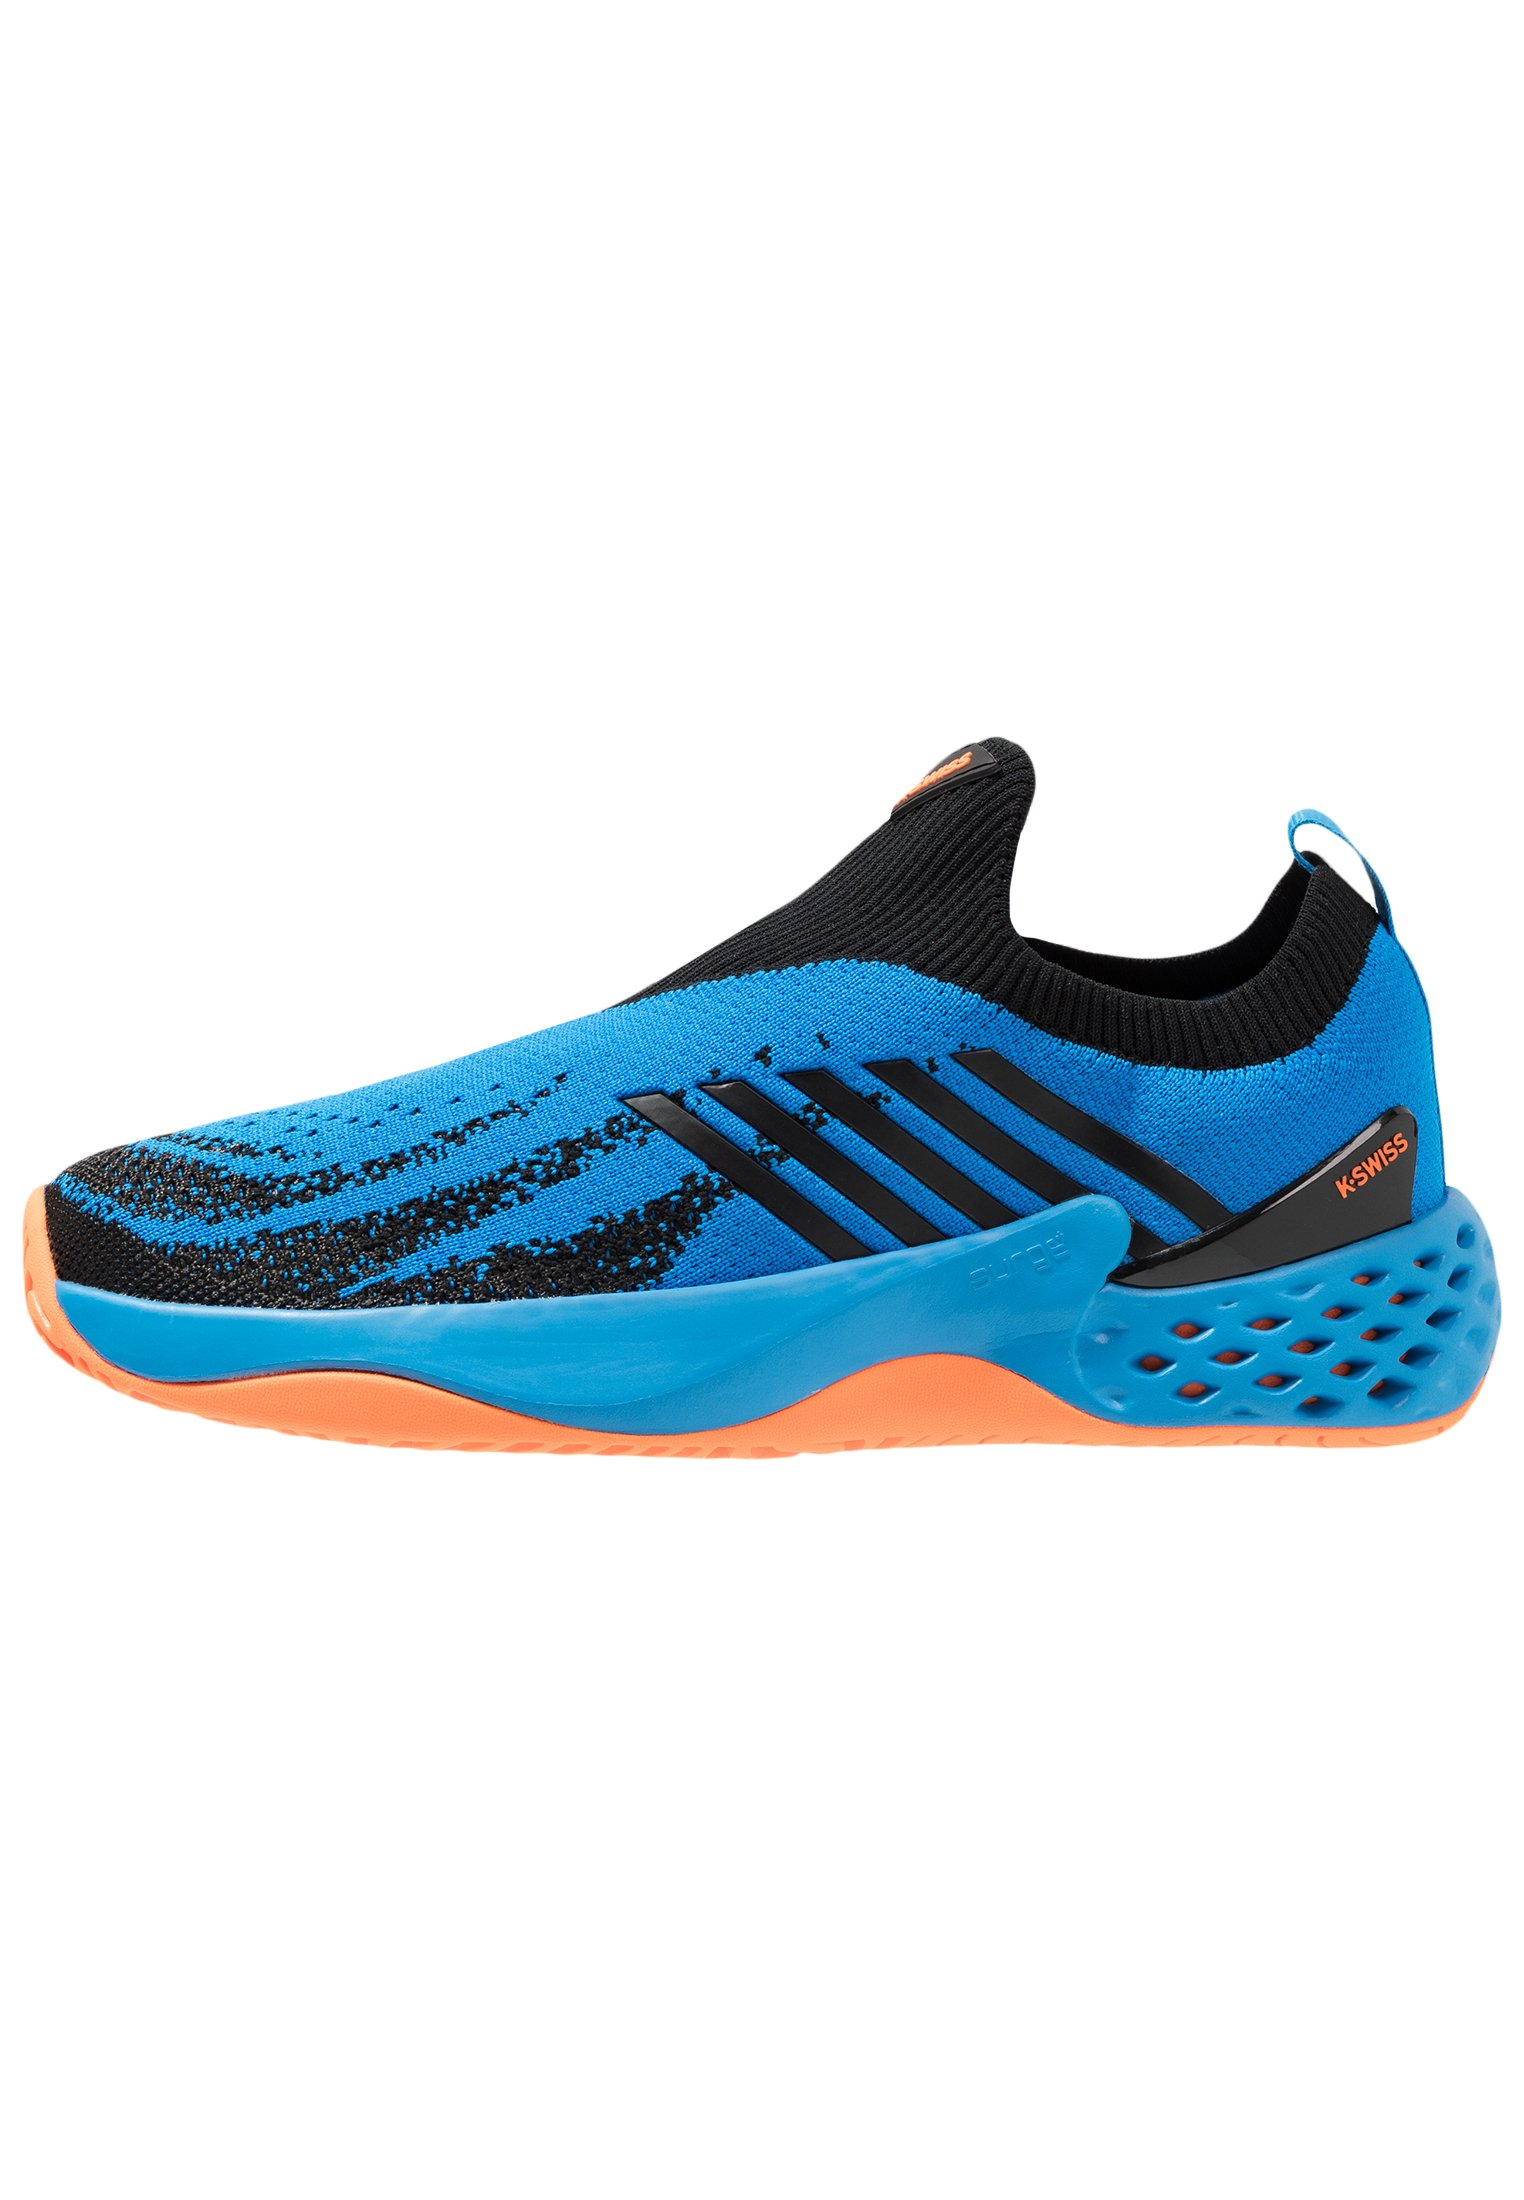 AERO KNIT All court tennisskor algiers blueblacksoft neon orange